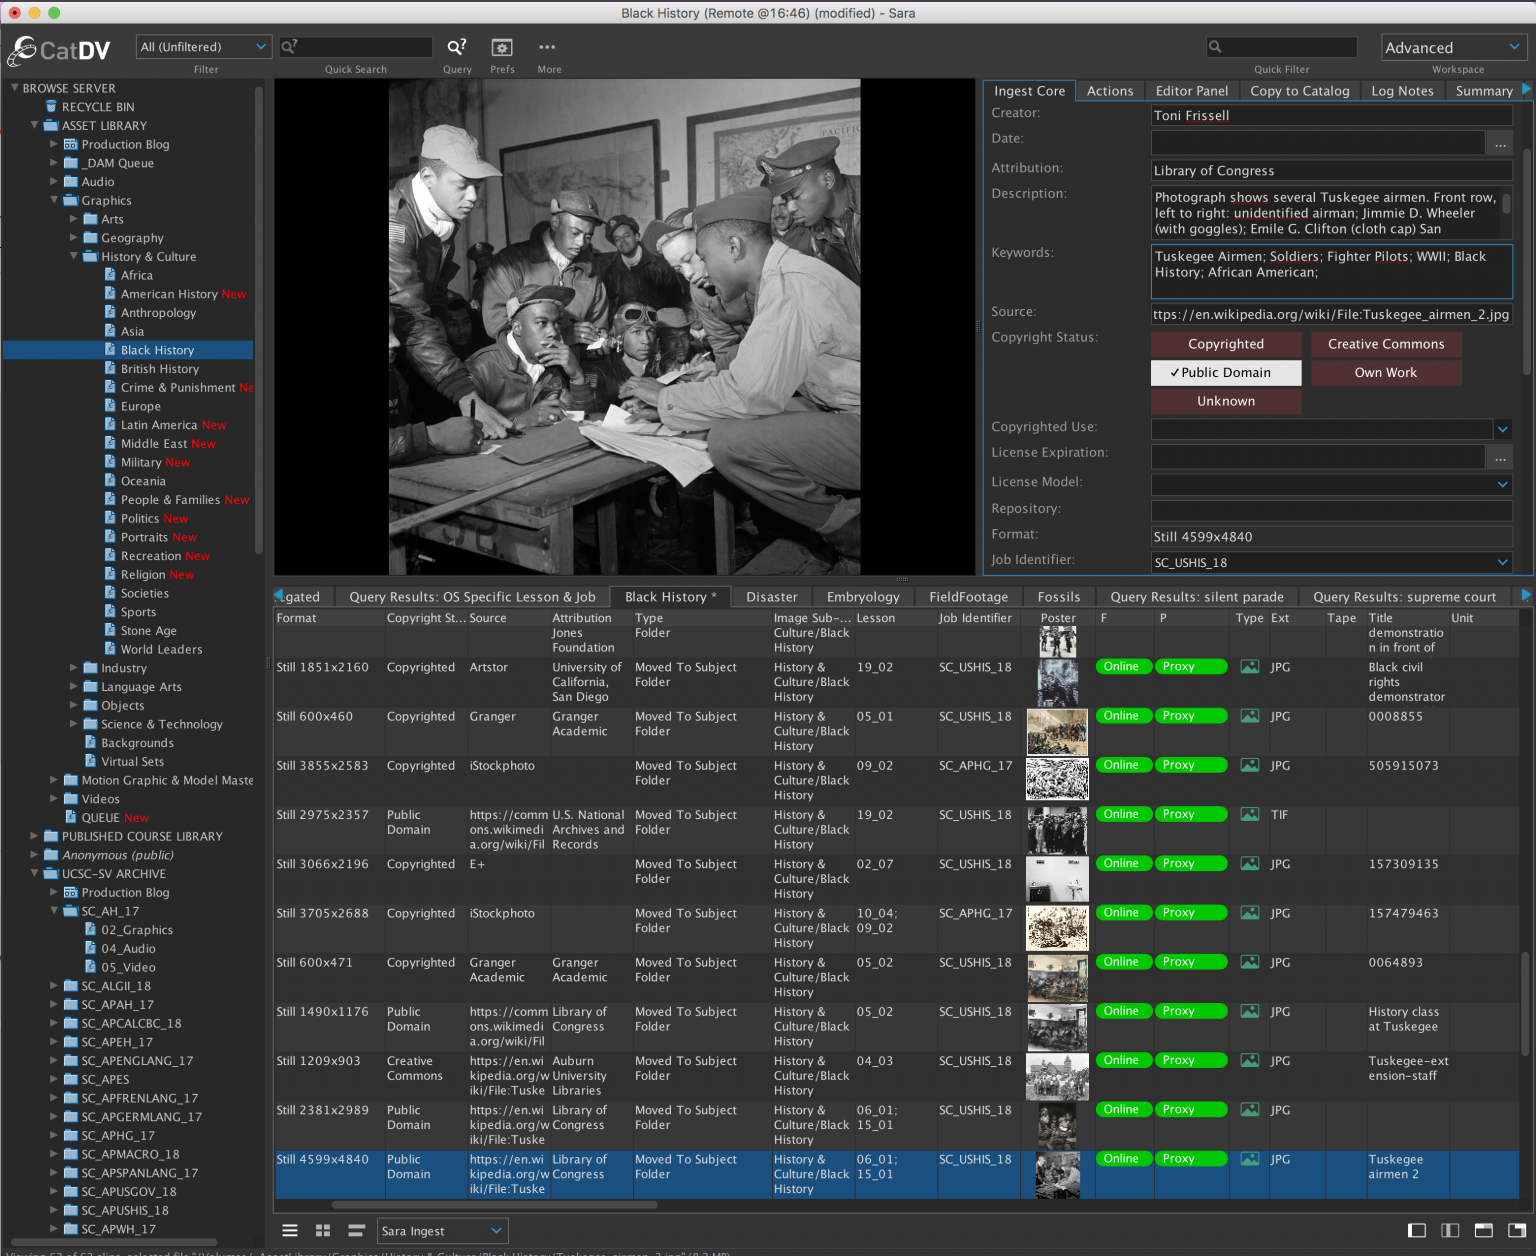 A view of a visual asset and the metadata I assigned to aid discoverability in a wider contextual range.